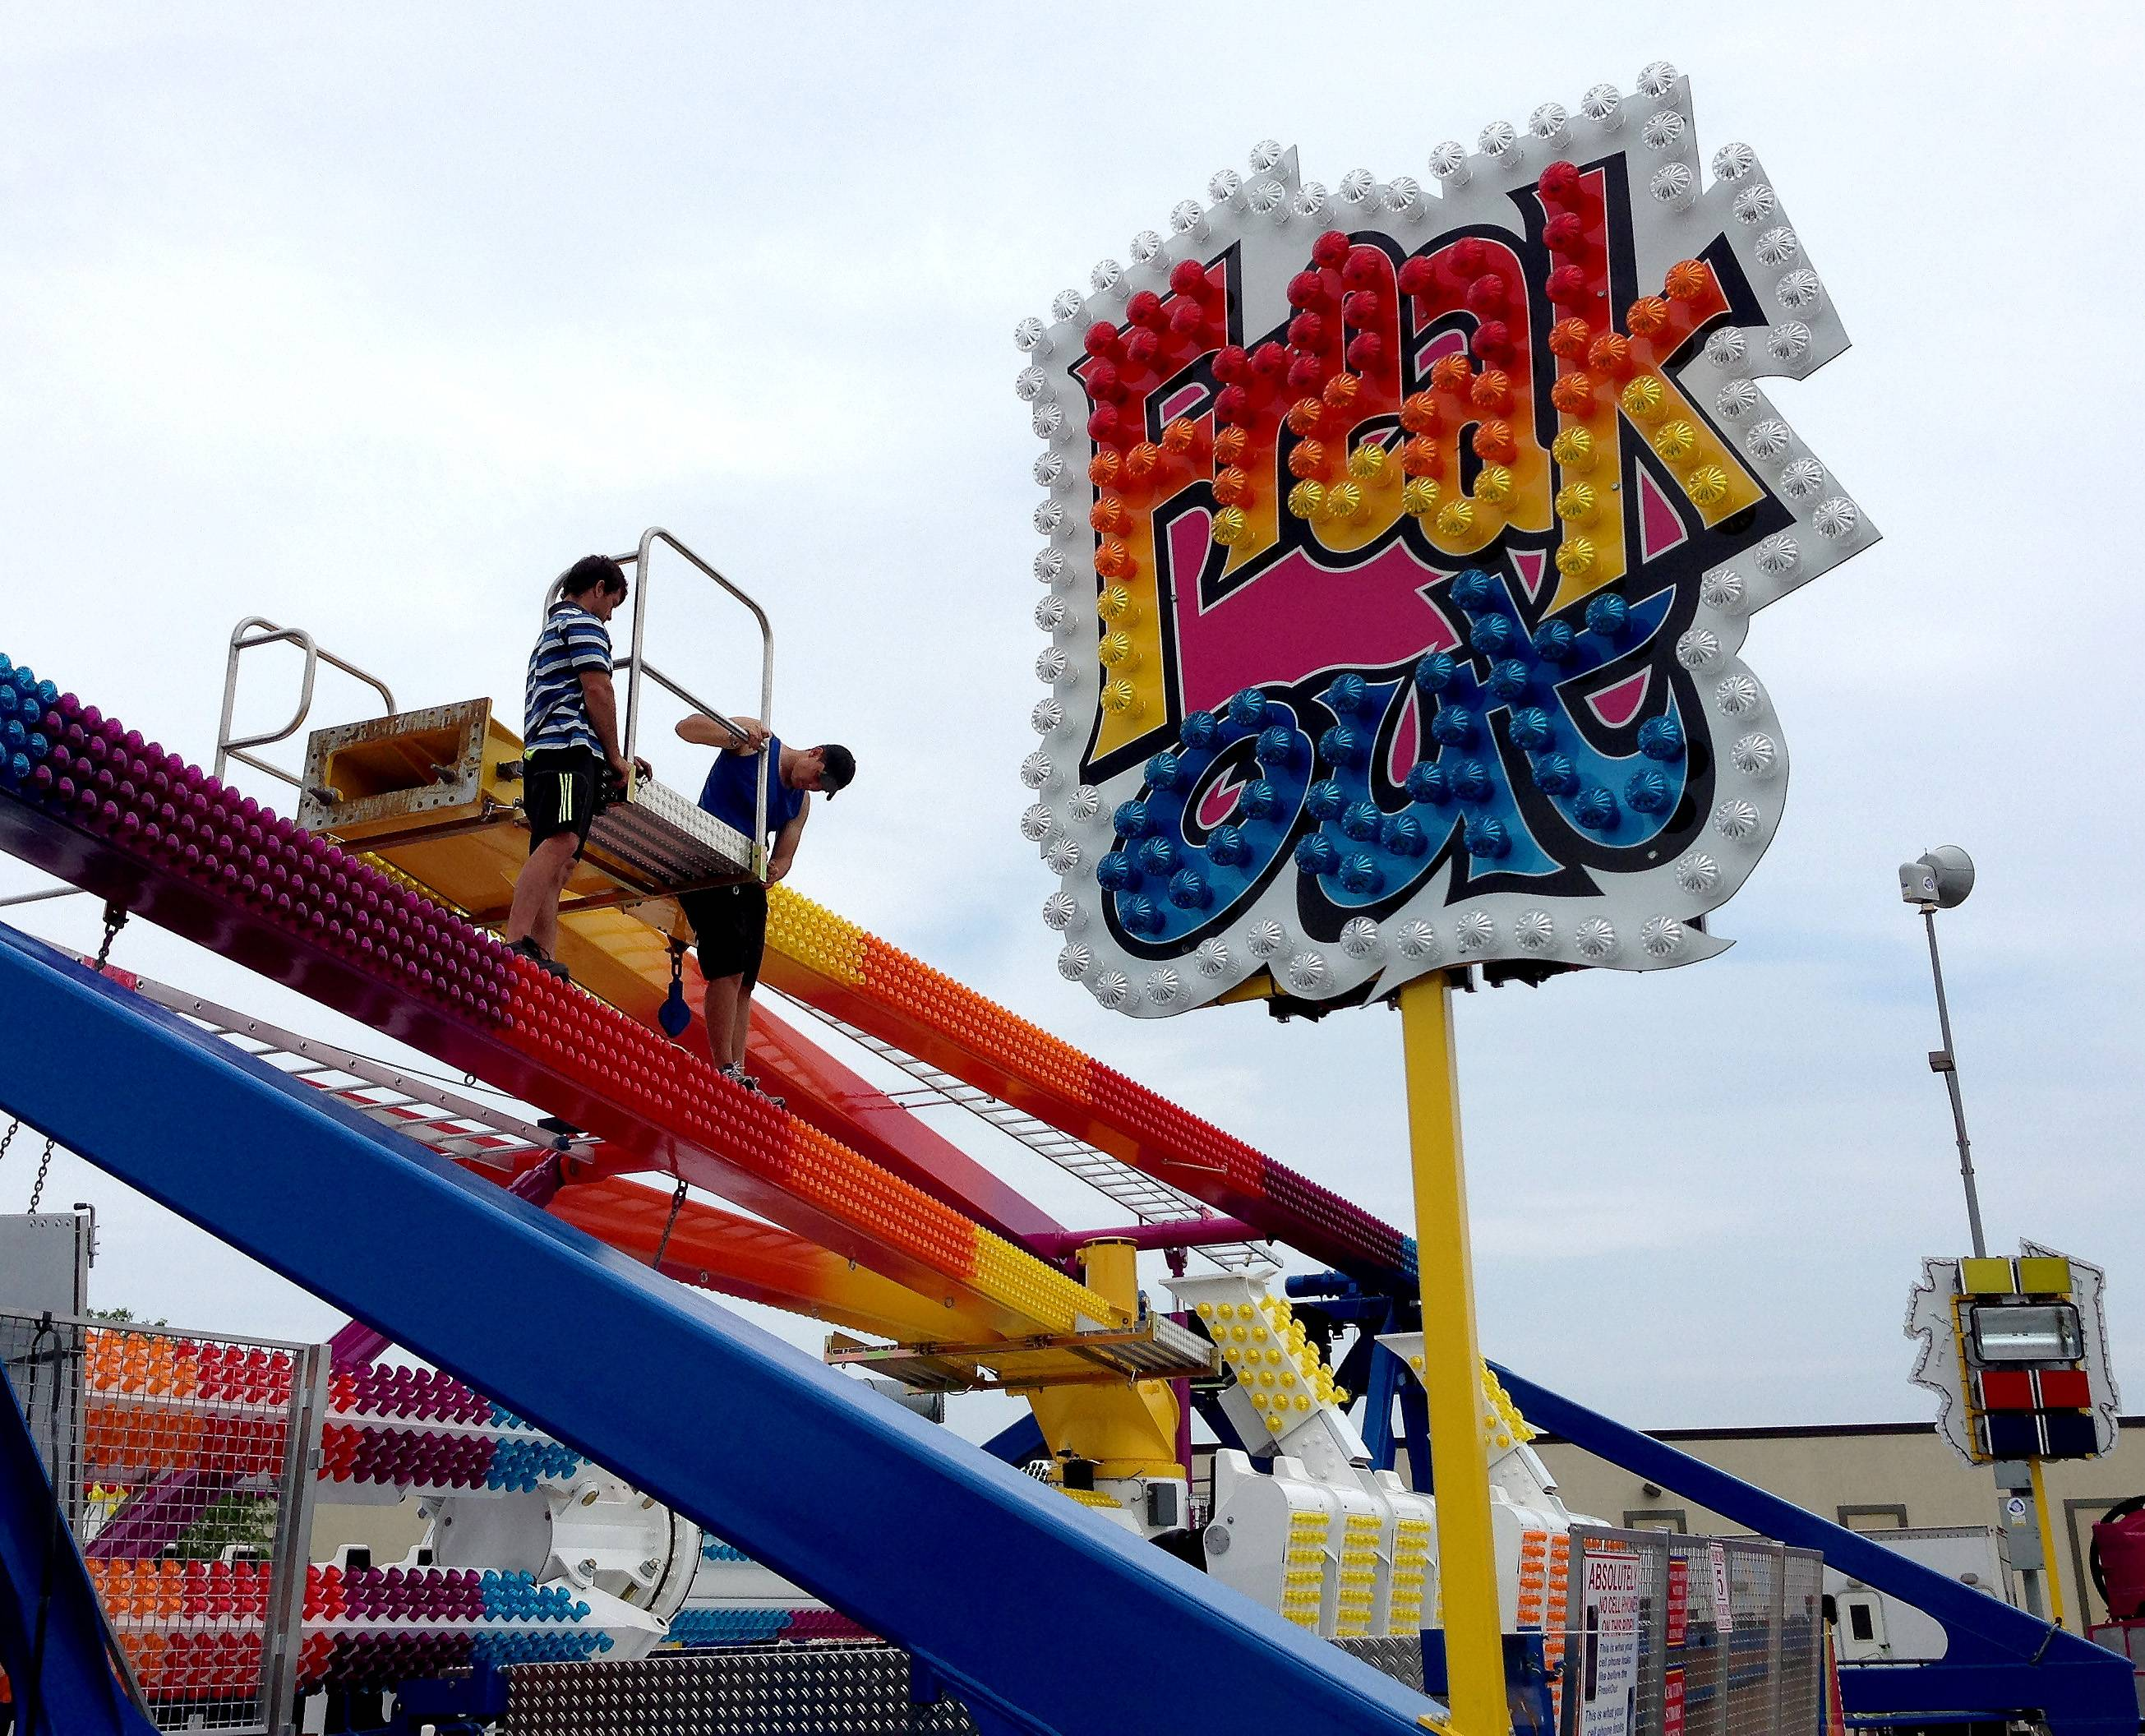 Crews set up the Freak Out ride Wednesday in preparation for the Roselle Lions Club's annual Rose Fest. The celebration opens Thursday and runs through Sunday in the village's train station parking lot.